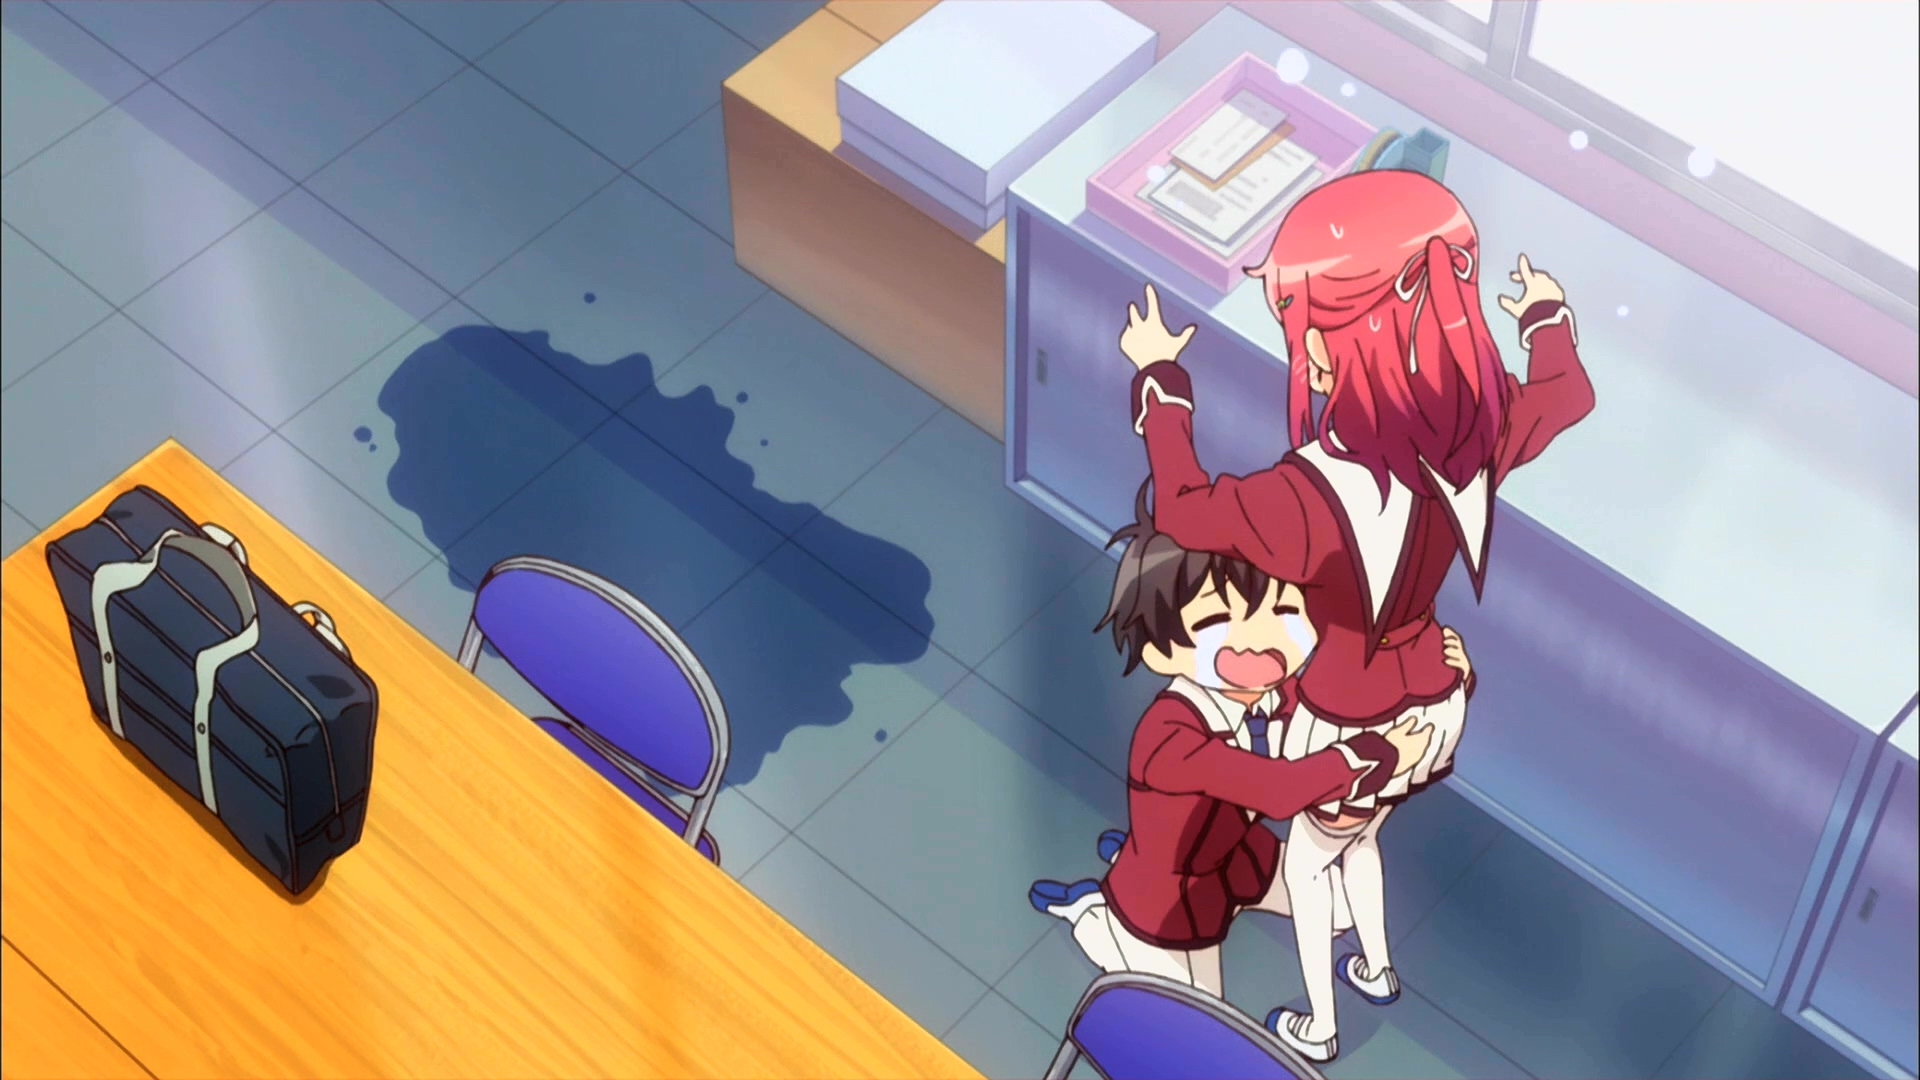 [HorribleSubs] Inou Battle wa Nichijou-kei no Naka de - 01 [1080p].mkv_20141016_234609.171.jpg